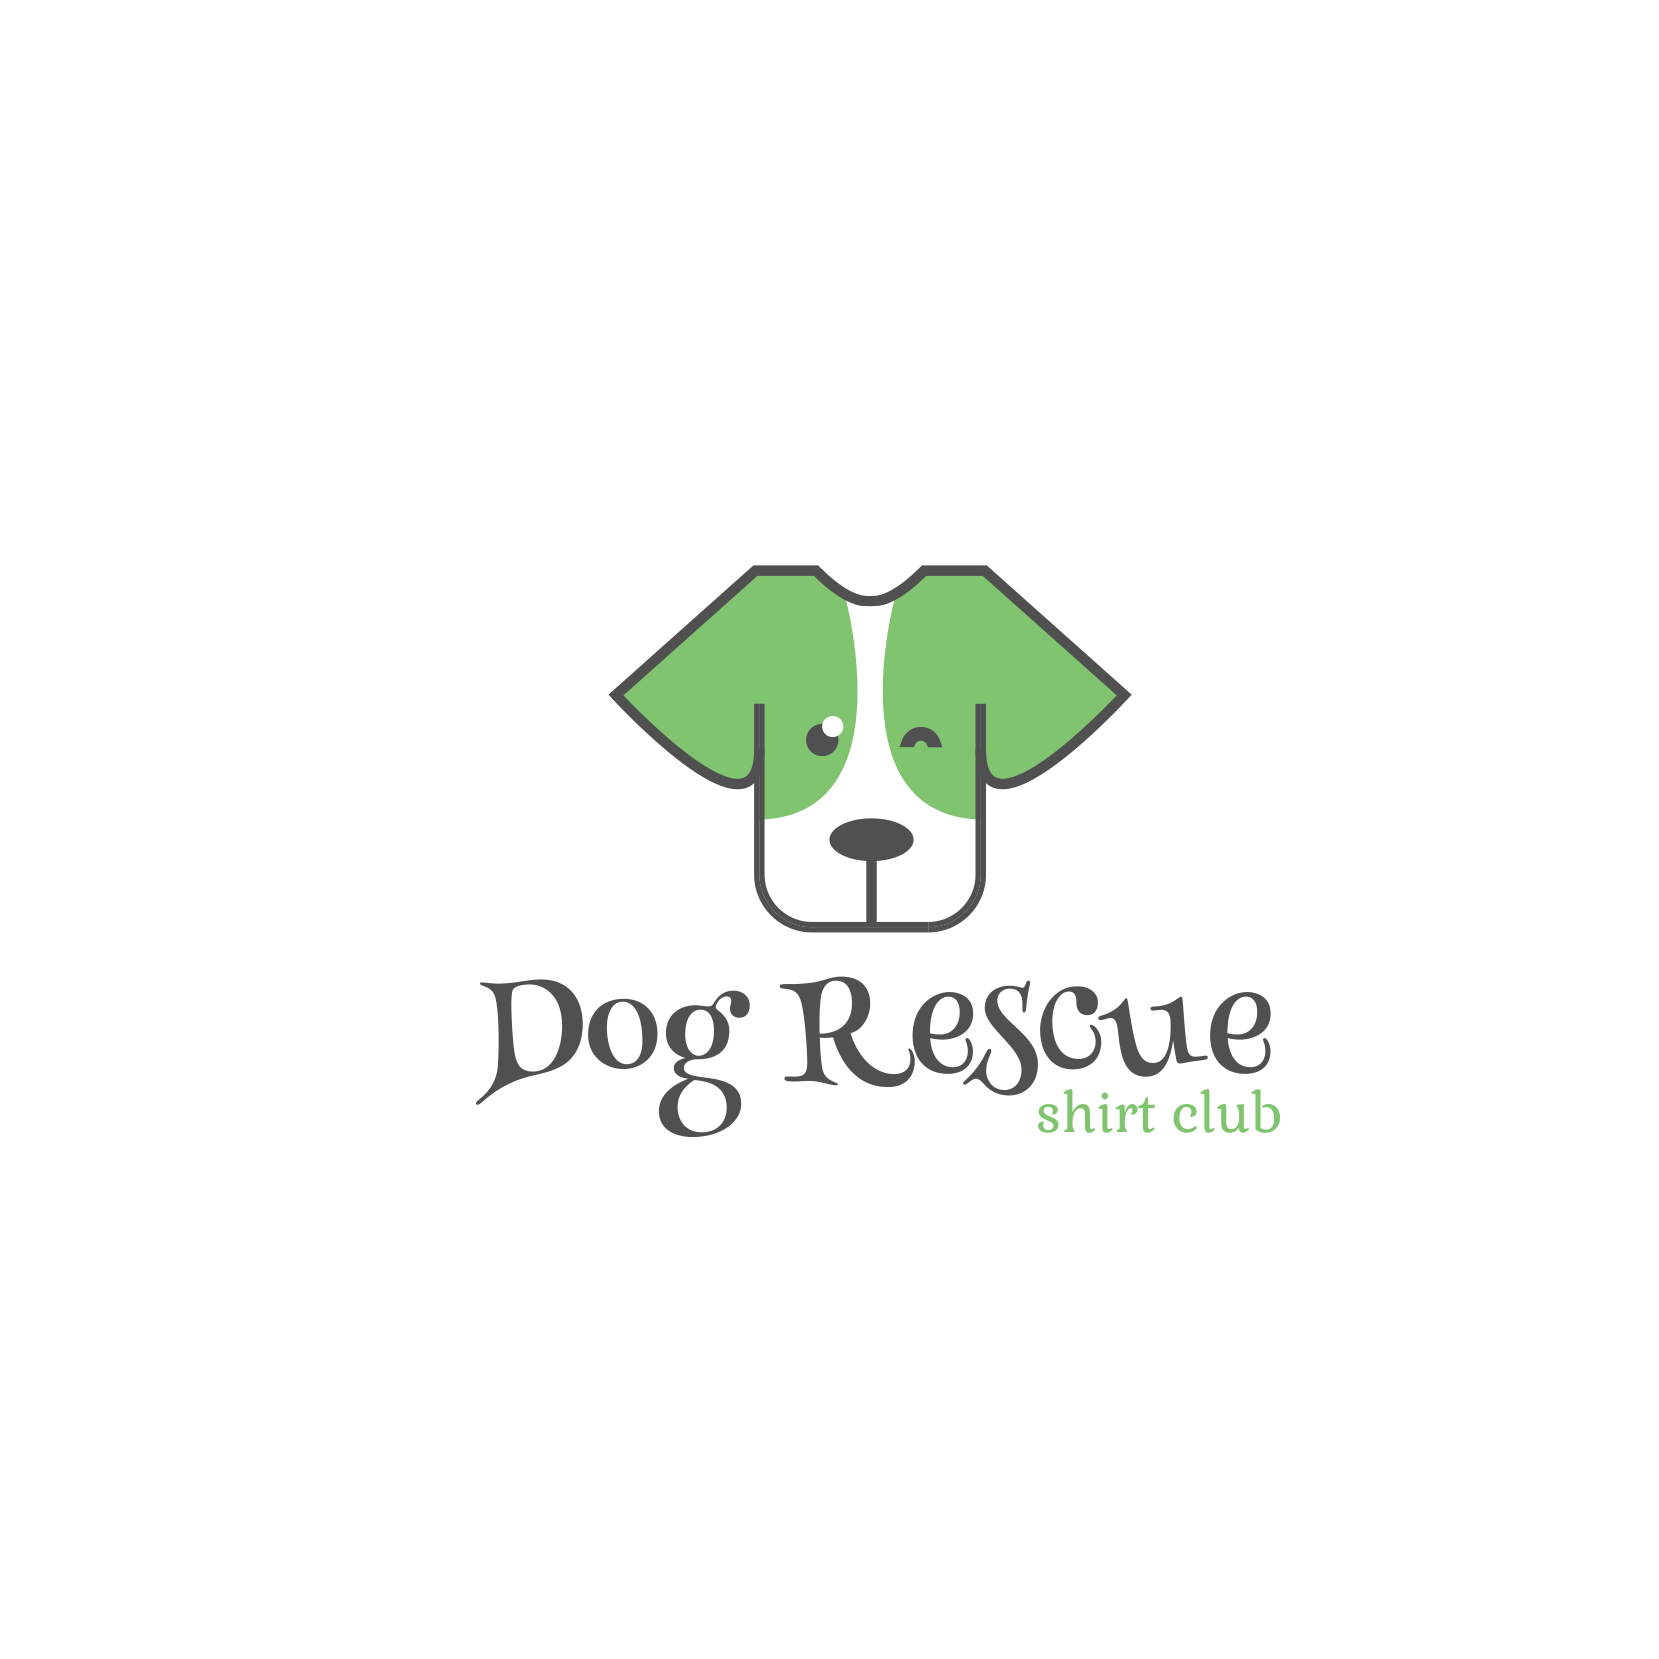 Dog Rescue logo